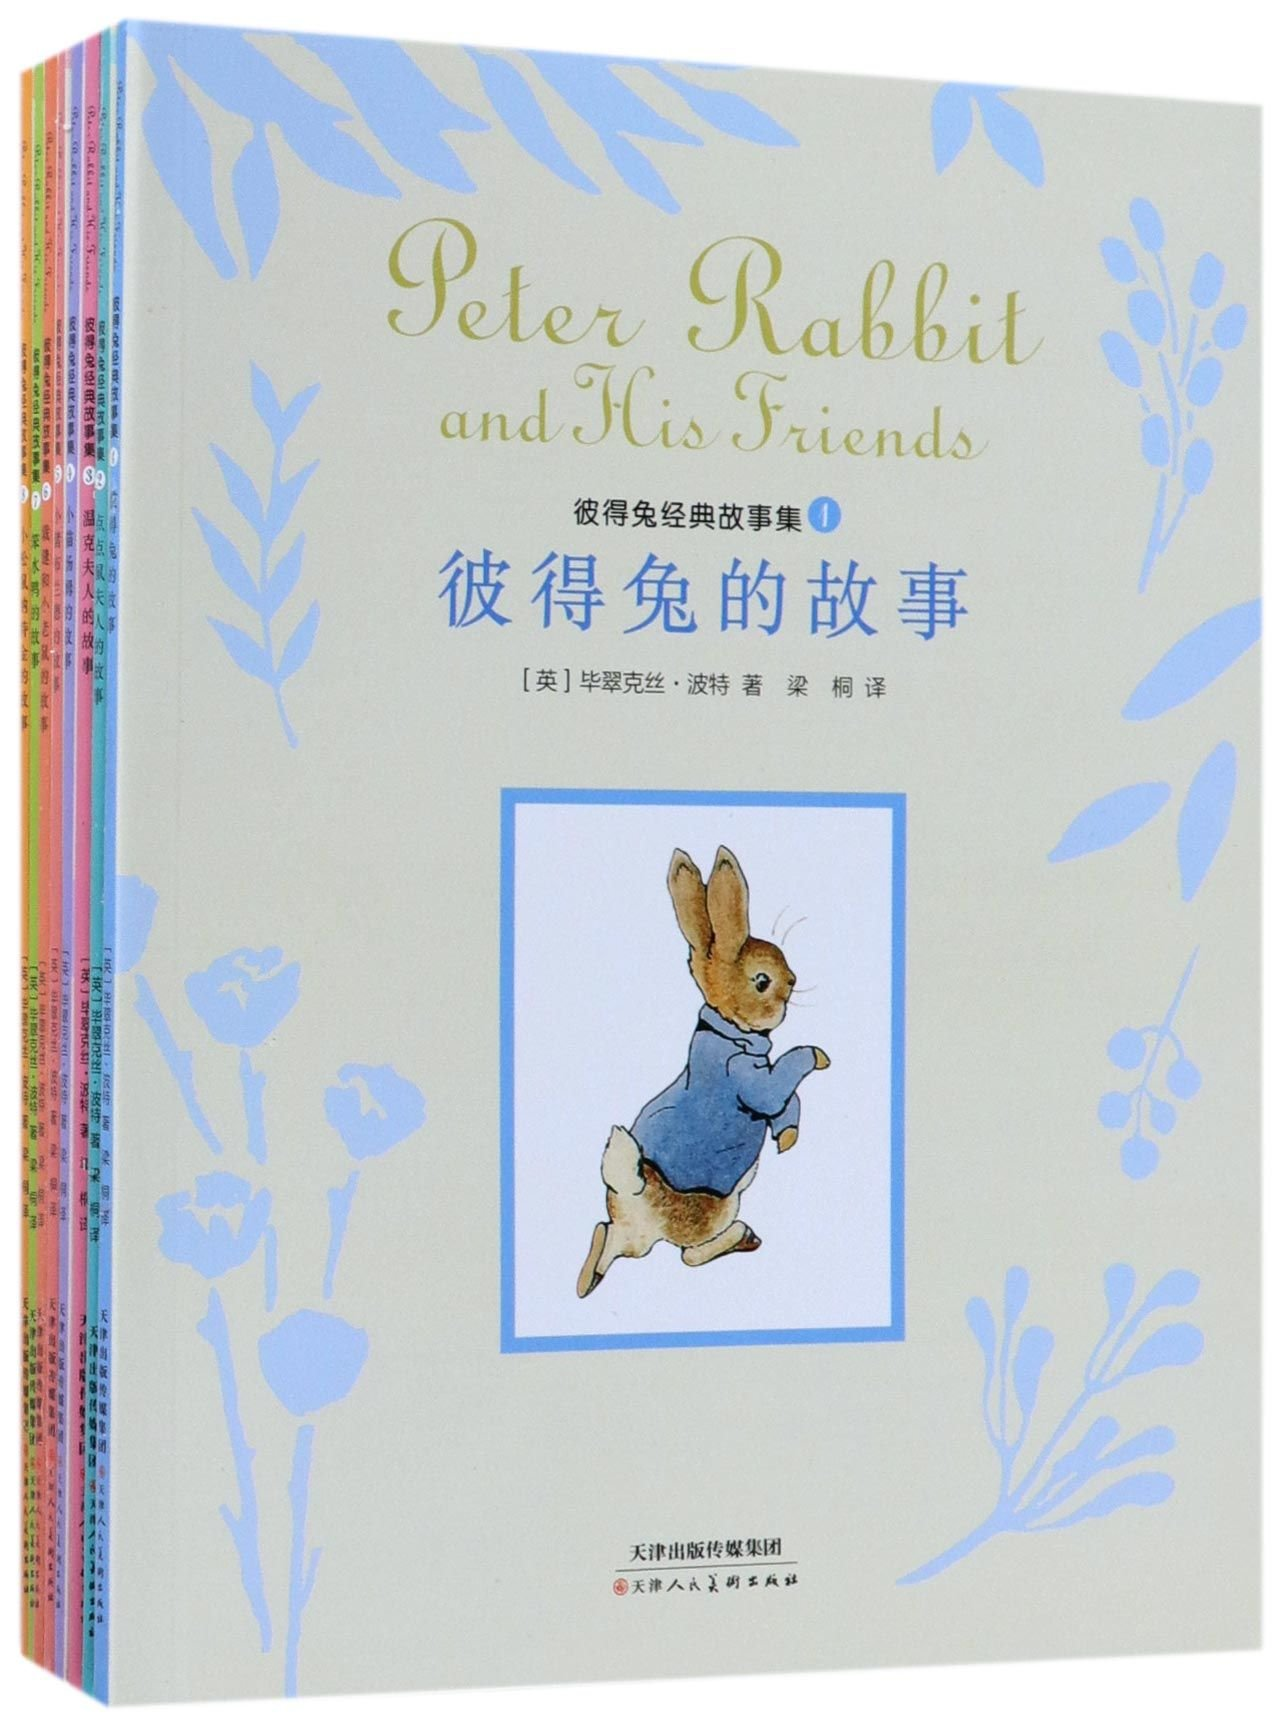 The Tale of Peter Rabbit (8 Vols) (Chinese Edition) pdf epub